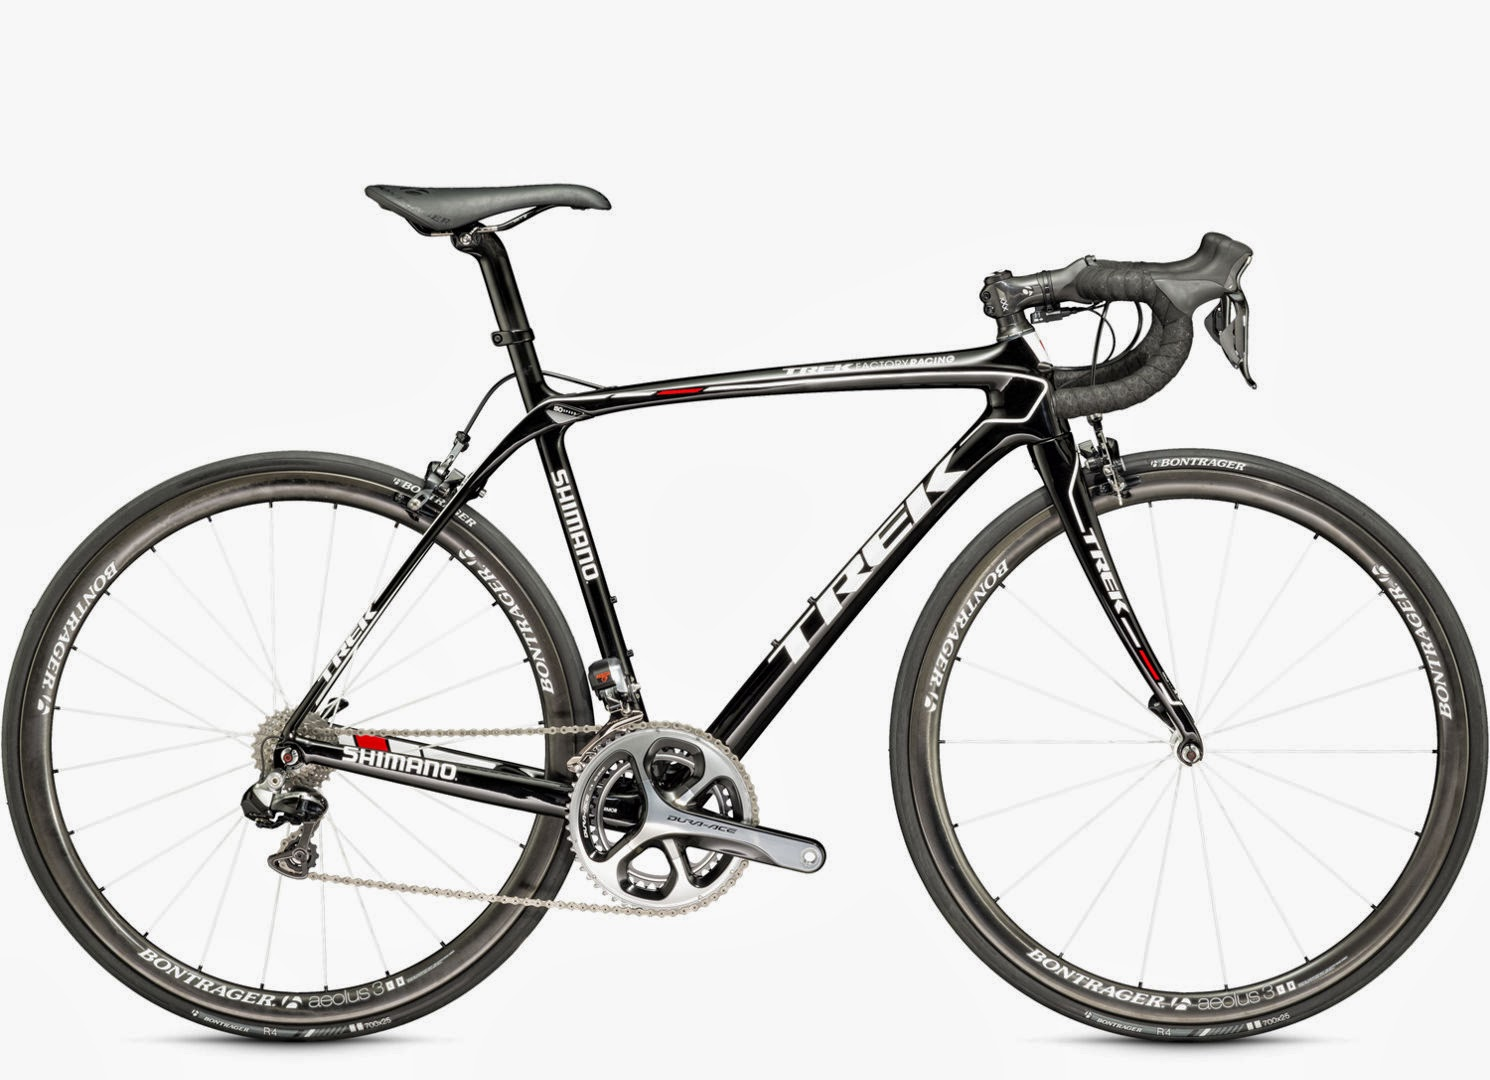 8bda125f892 Bumsteads Road and Mountain Bikes: 2014 Trek Domane Classics via ...